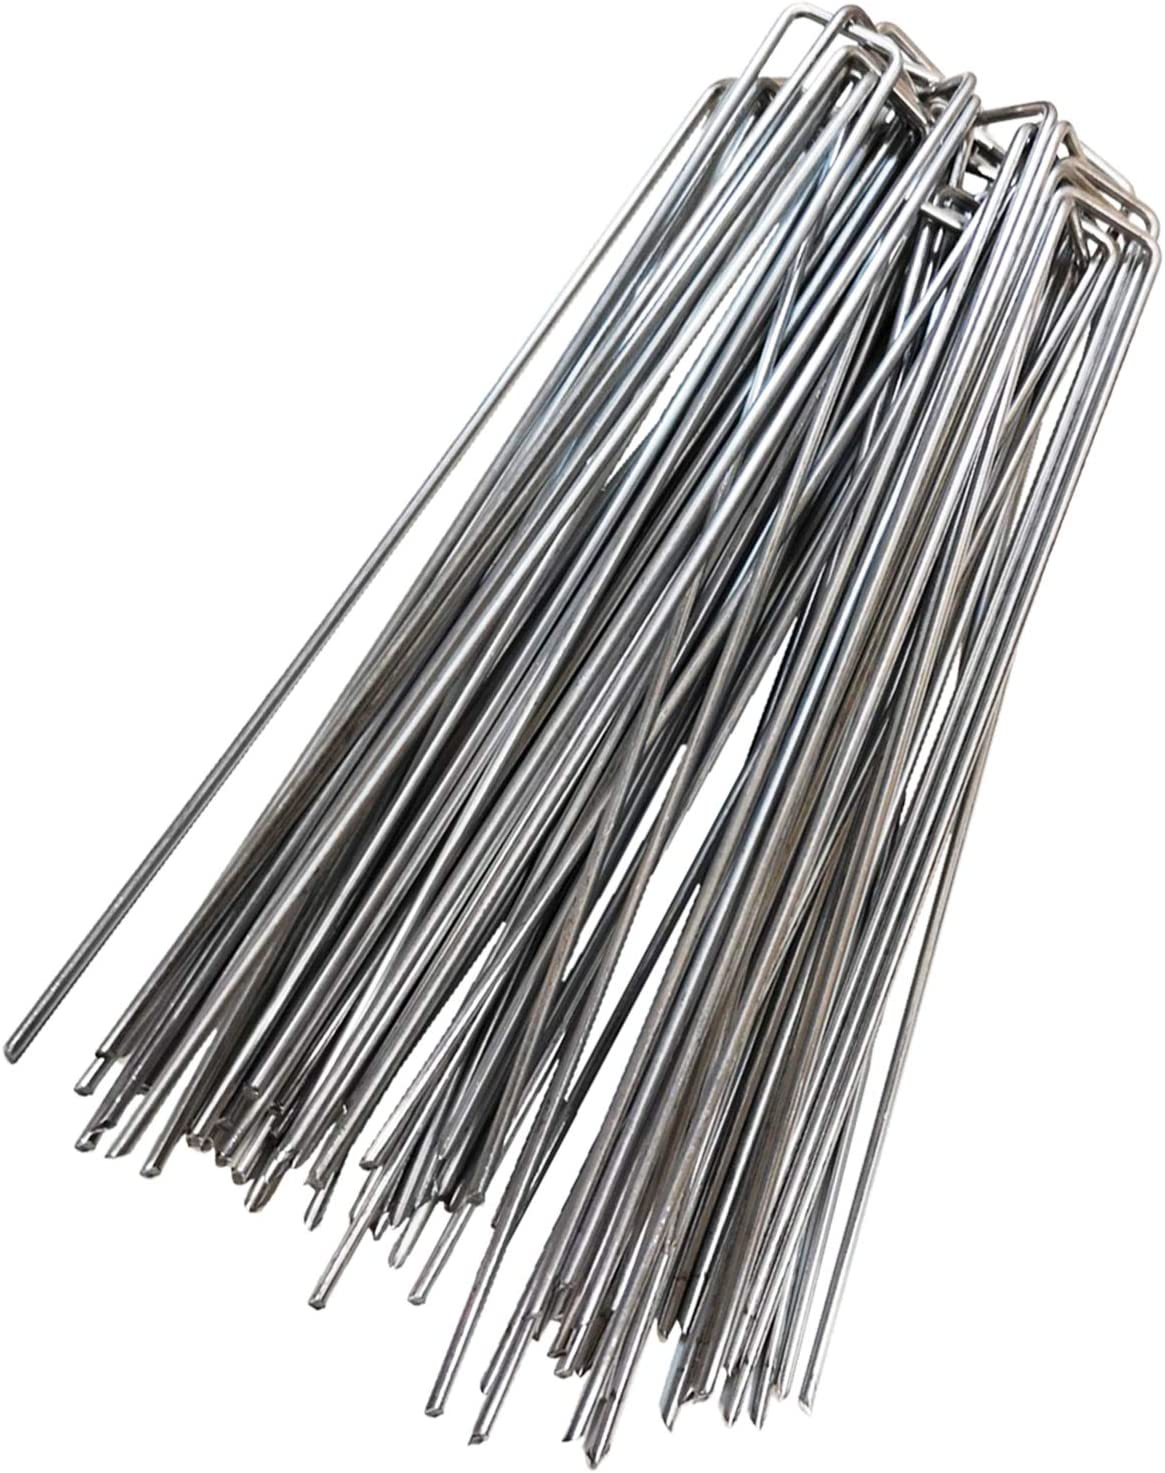 Impactspring 12Inch Garden Stake,30pc Galvanized Landscape Staples Extra Long,Sharp End U-Type Staples Perfect for securing Dog Fences,Weed barriers,Outdoor Wires,Cords,Tents, tarps and More(Sliver)